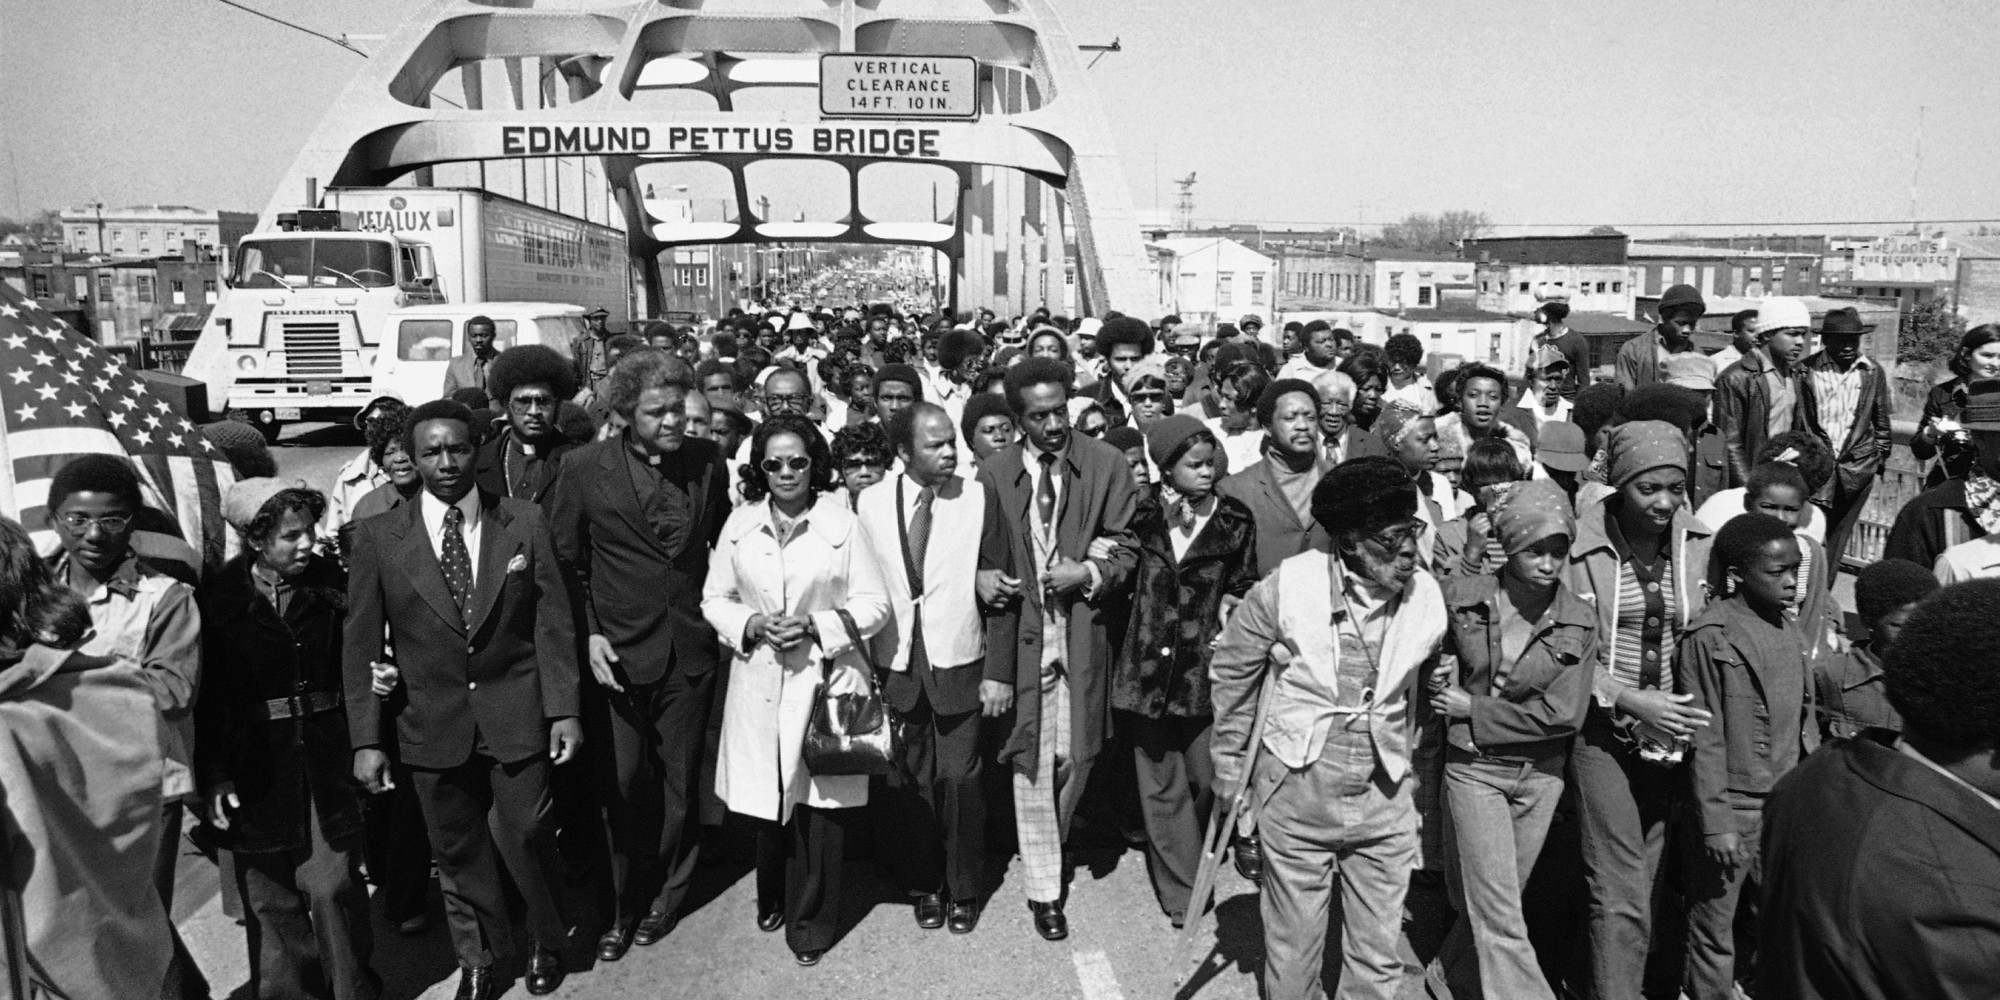 The riot that sparked the selma march